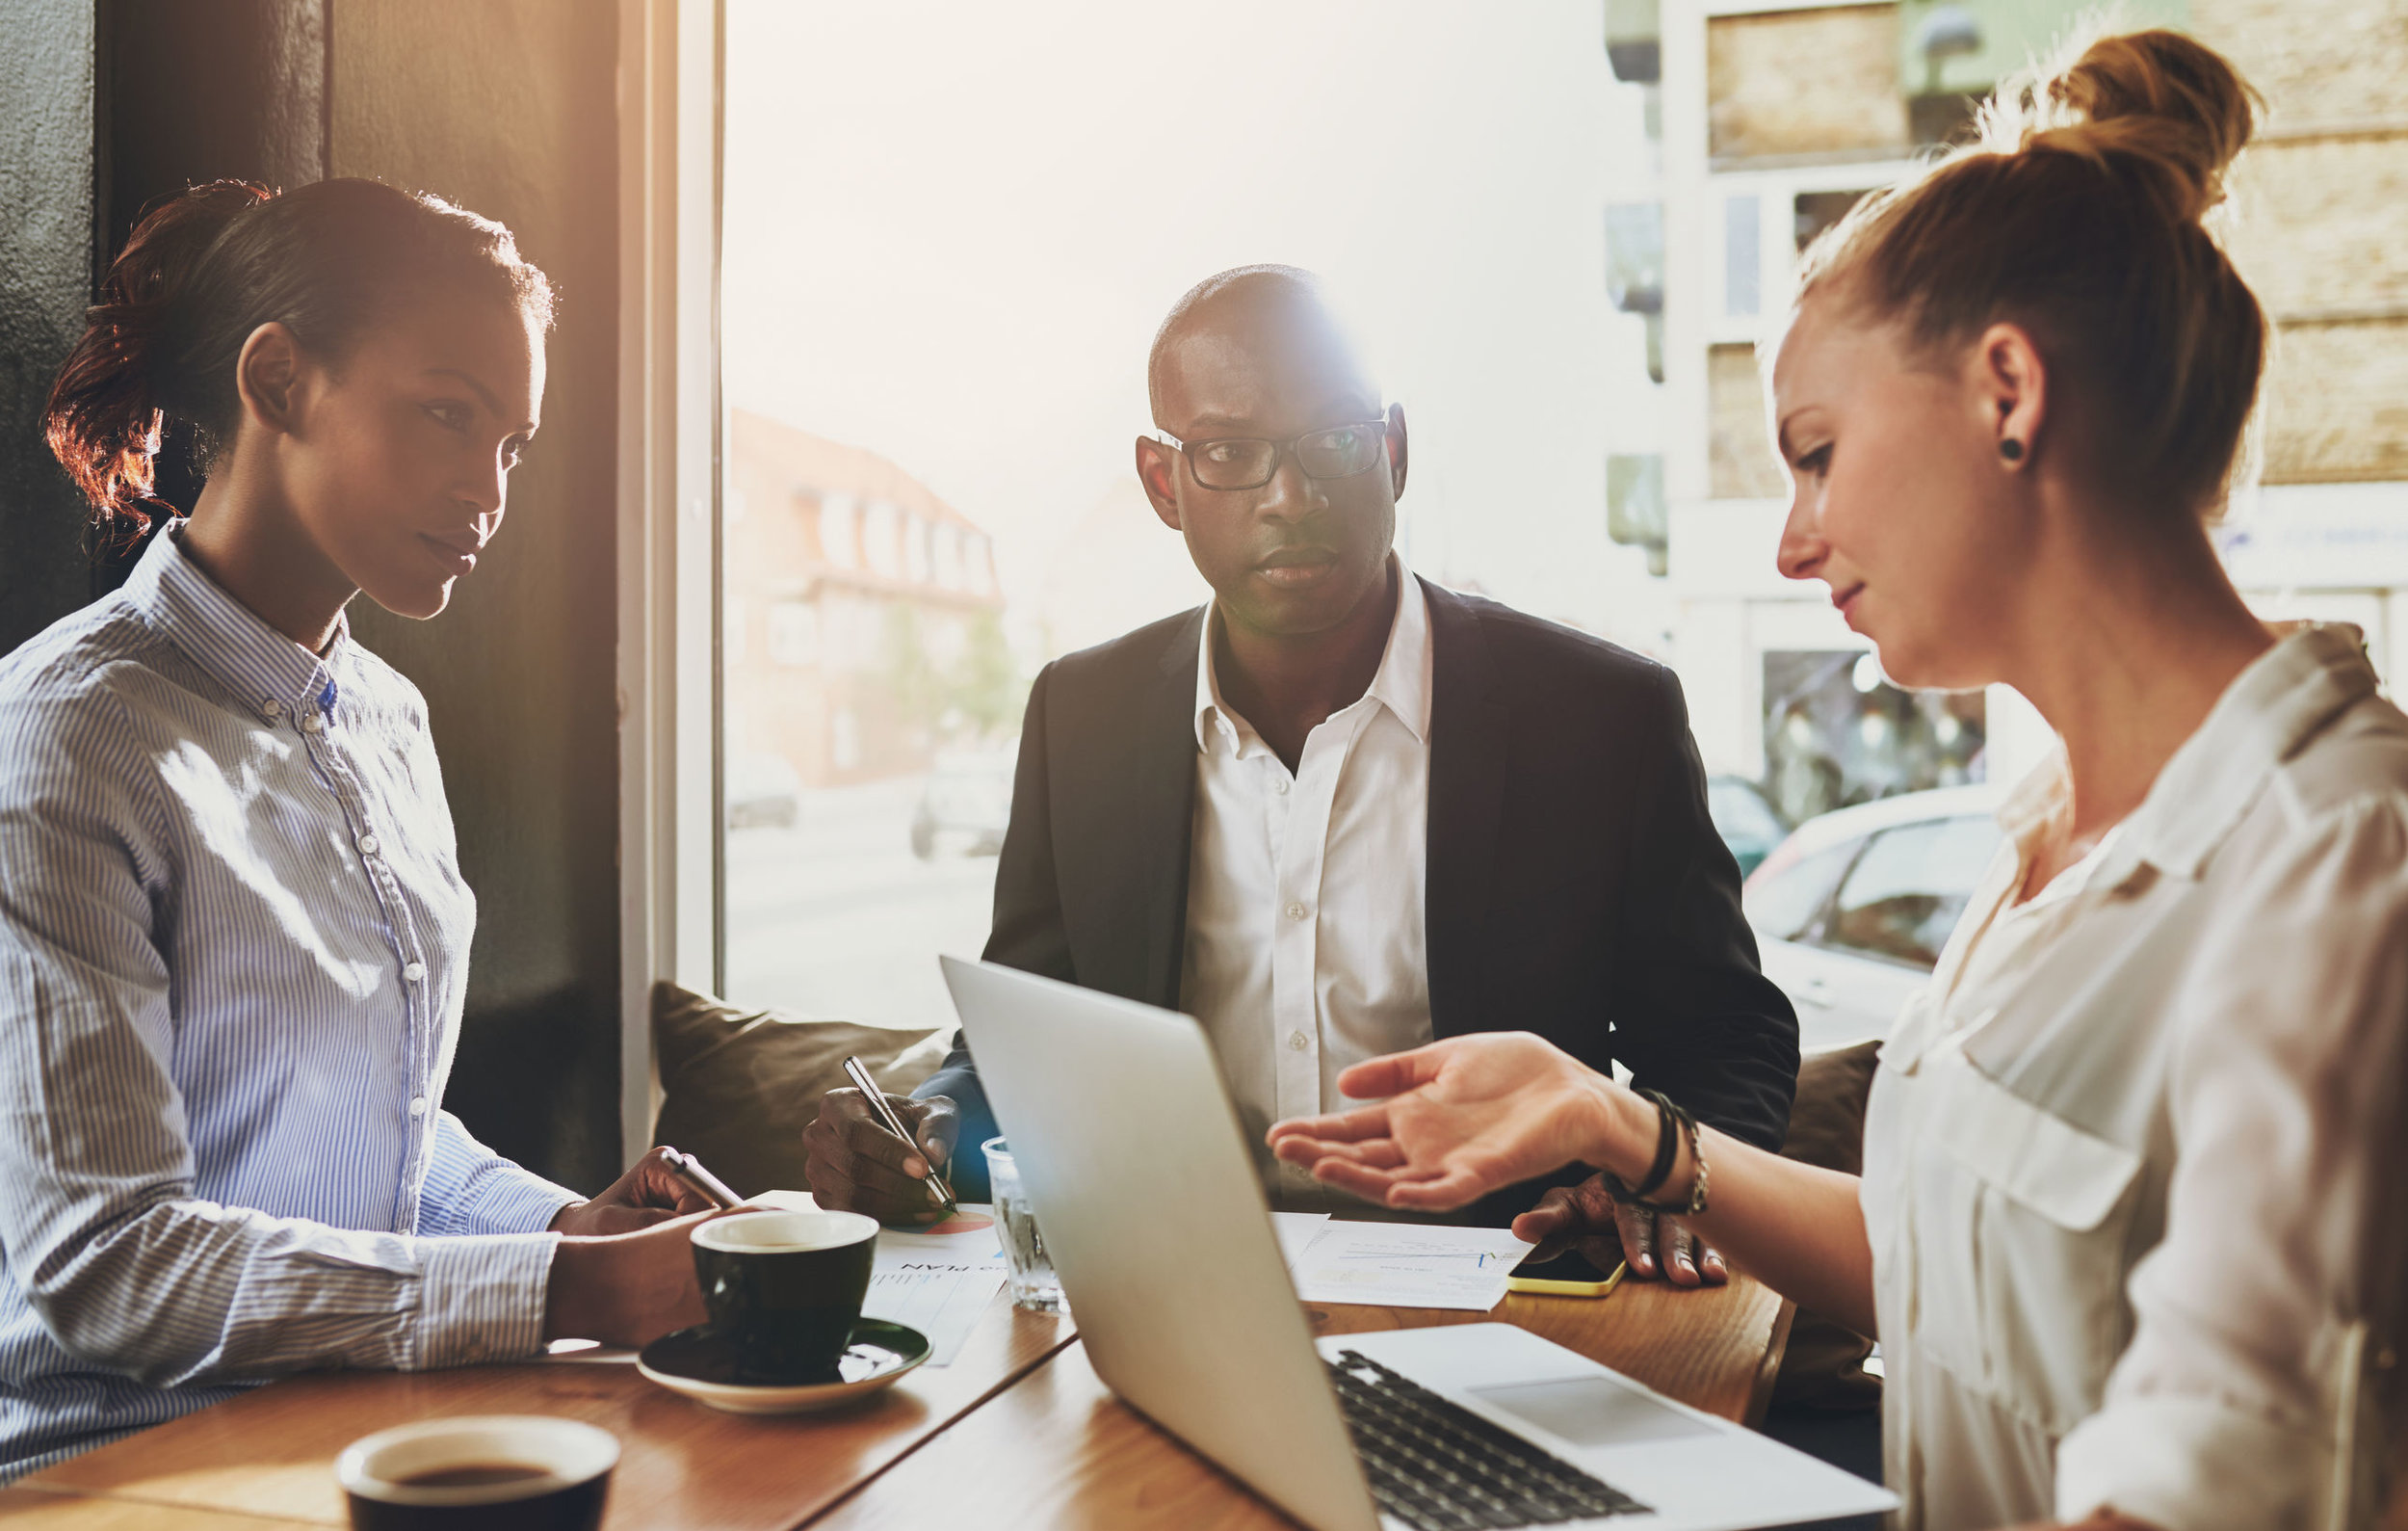 Productivity tools, machine learning software and communication platforms can certainly streamline teamwork, but successful collaboration is ultimately the result of the individuals in those teams rather than the tools themselves.